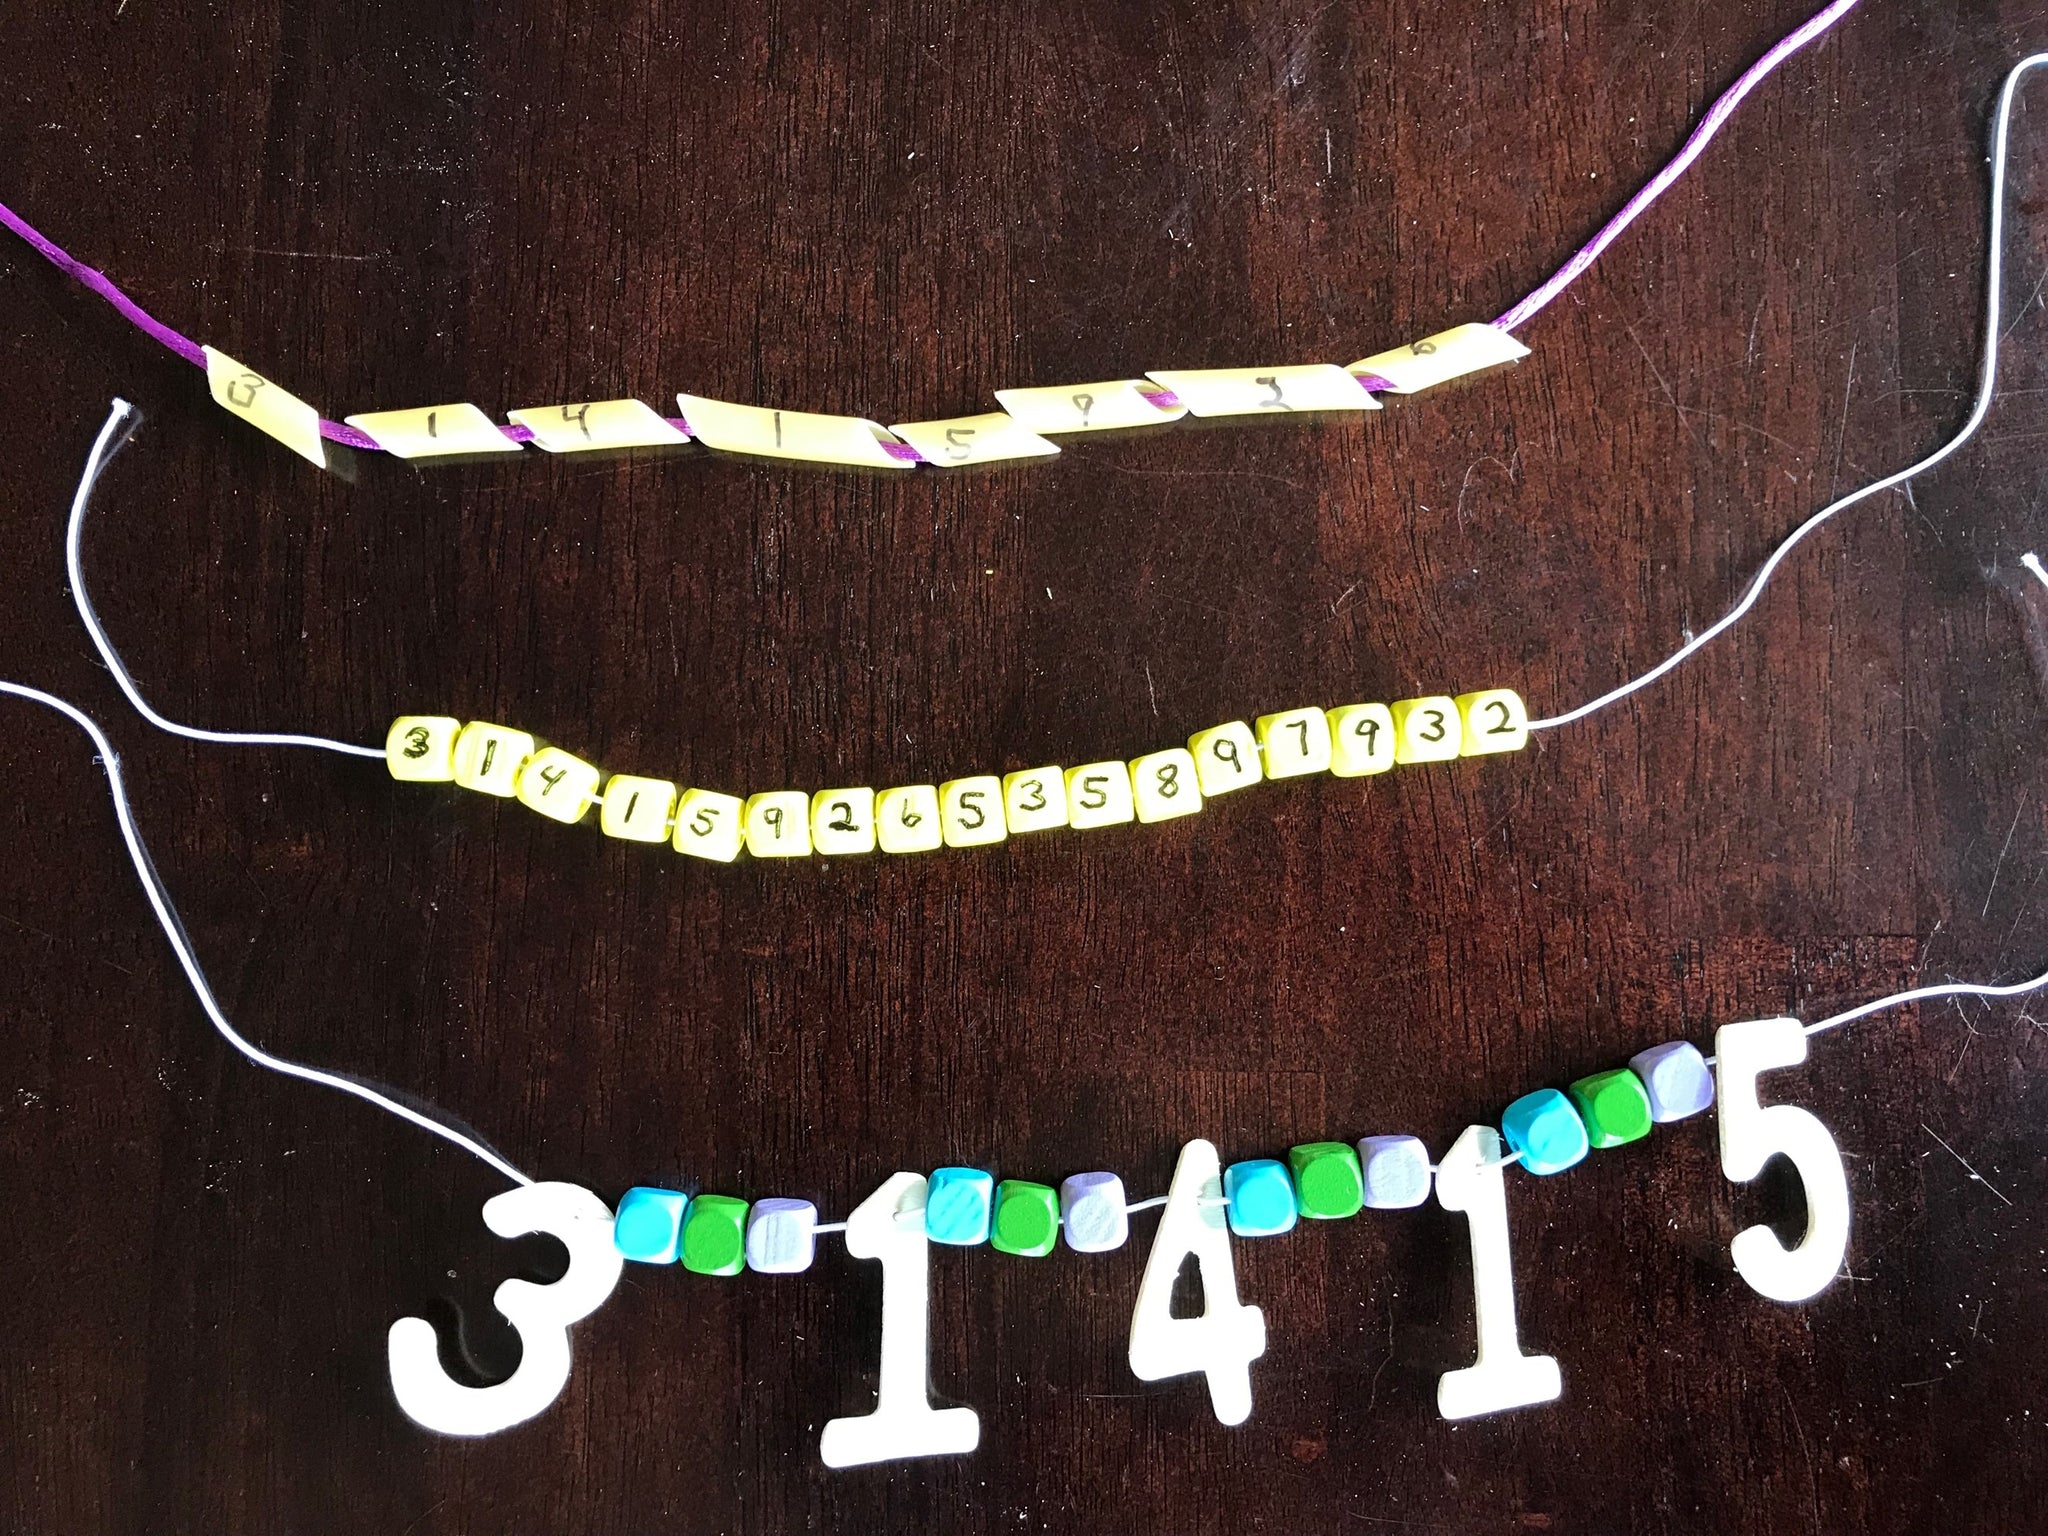 I Spy a LOT of Numbers - Make a Pi Necklace Activity